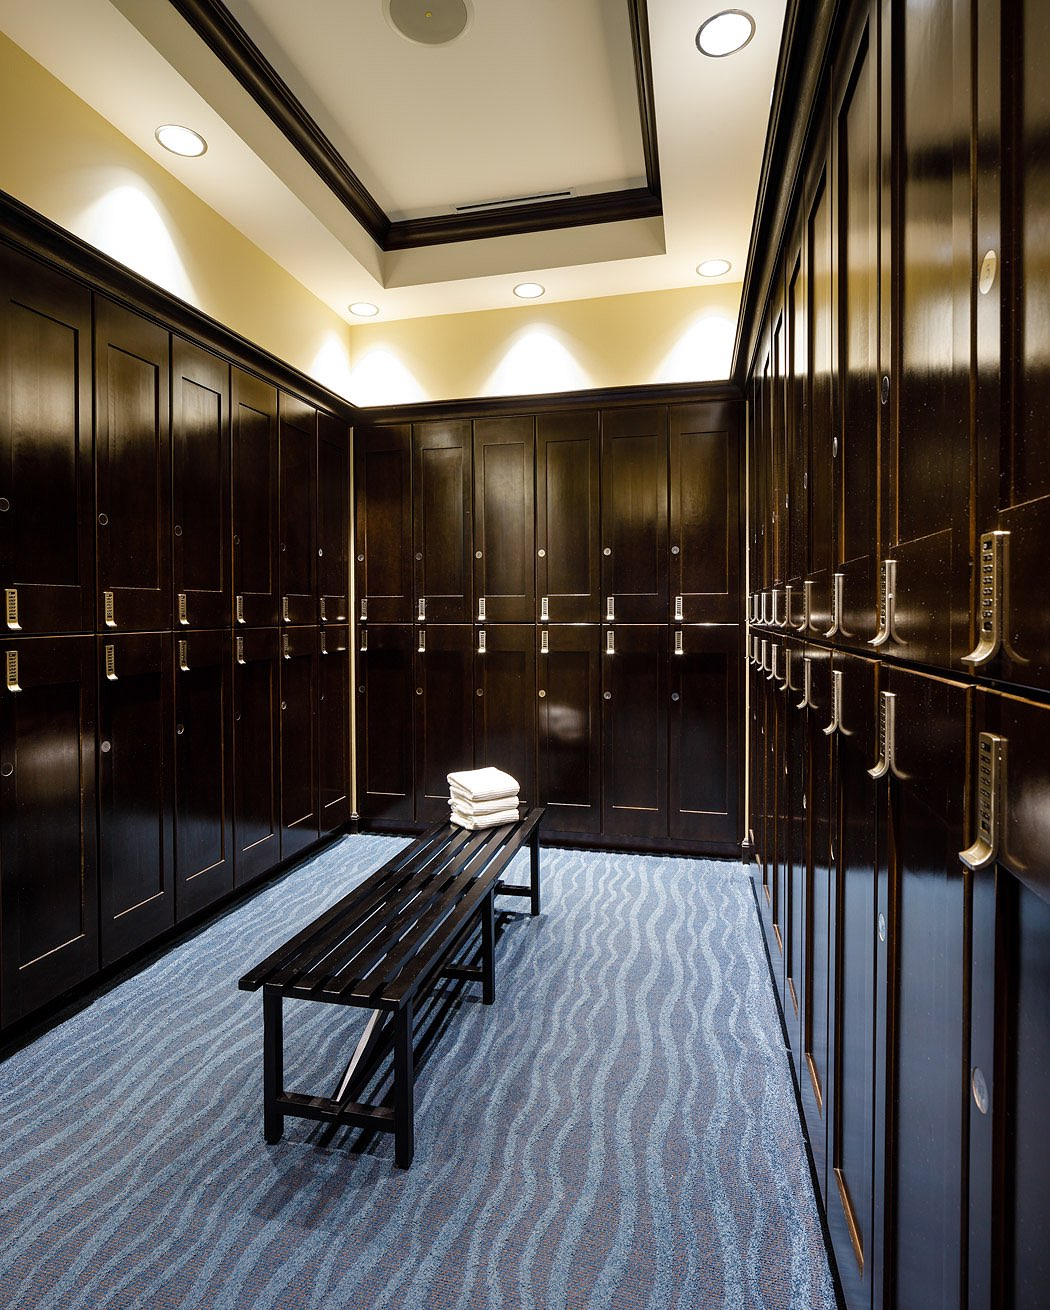 inside view of a spa locker room